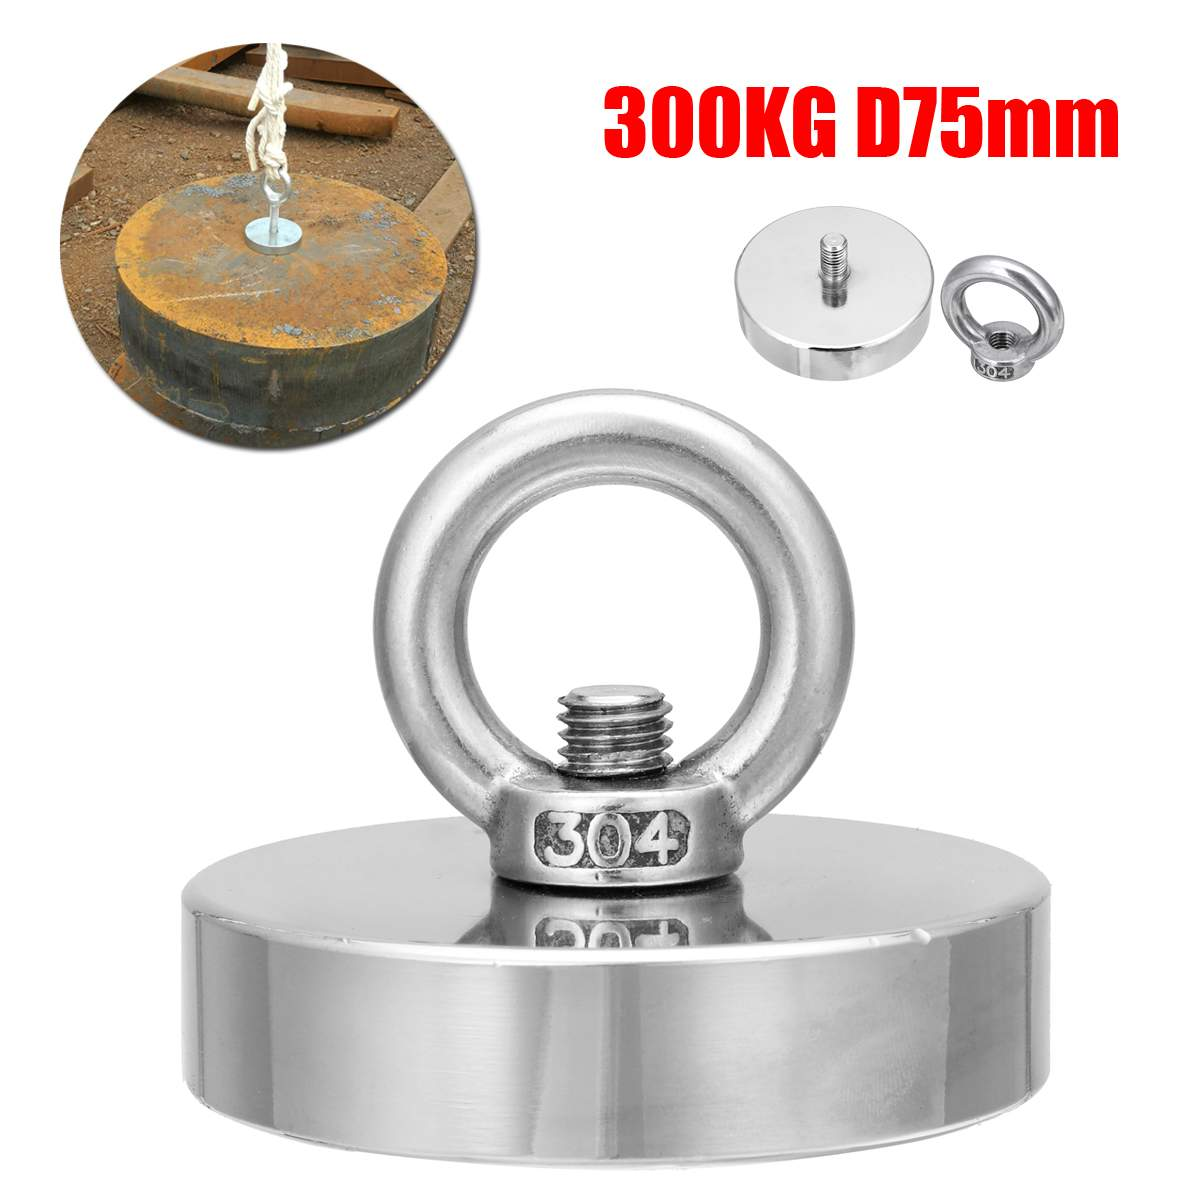 300KG D75mm Strong Salvage Neodymium Magnet Fishing Deap Sea Salvage Recovery Retrieving Treasure Hunting Magnet salvage футболка